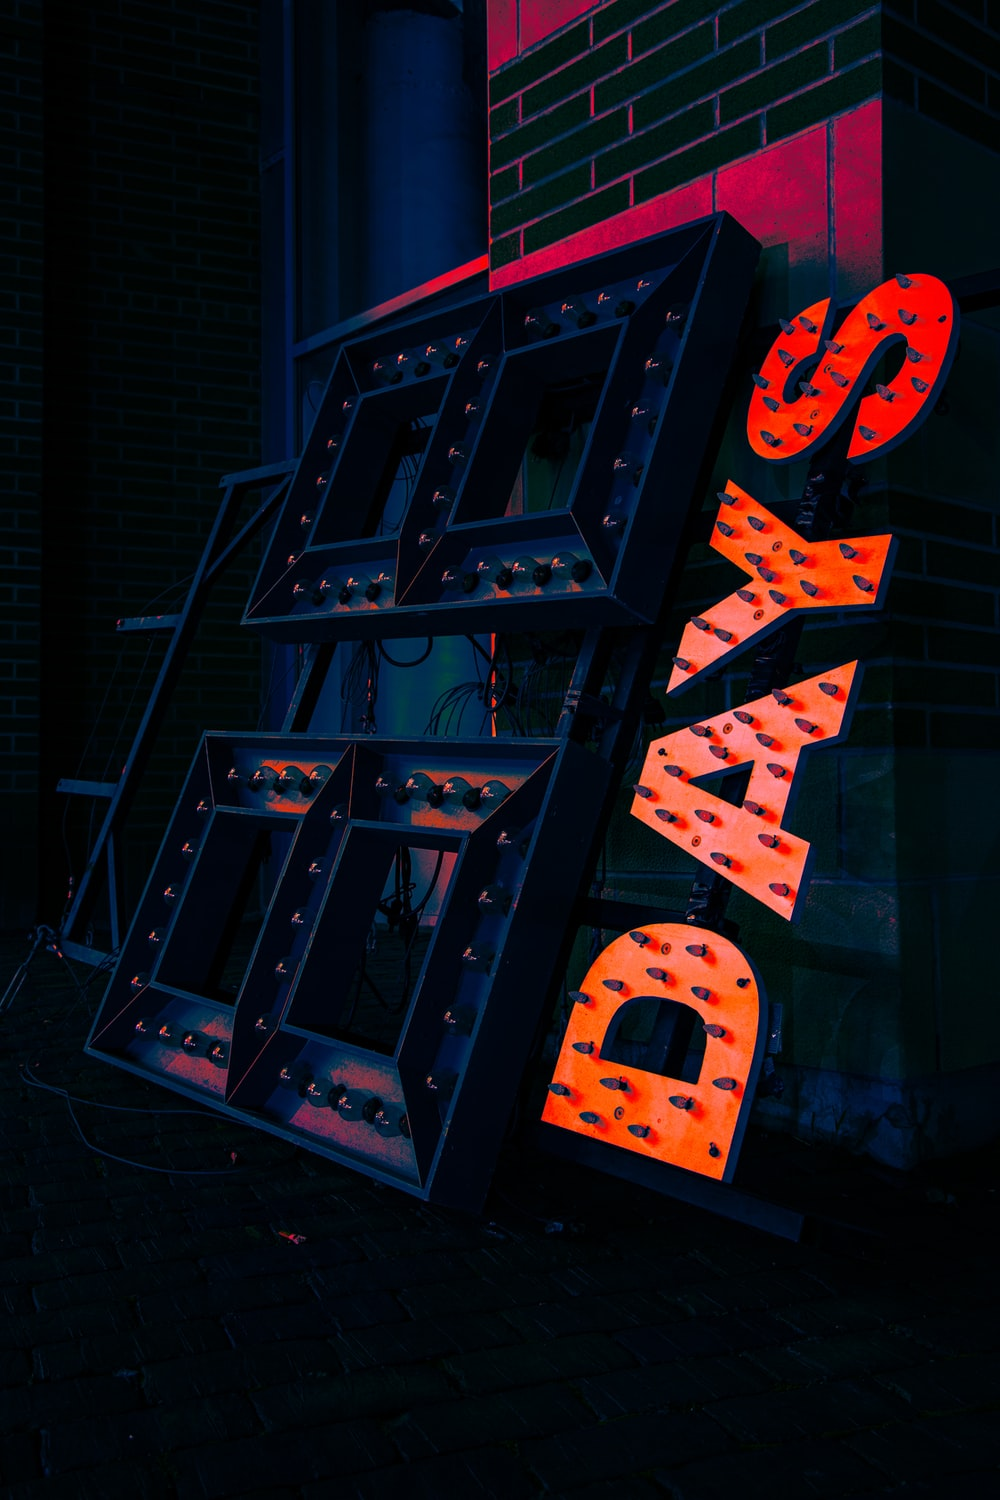 blue and red led light signage